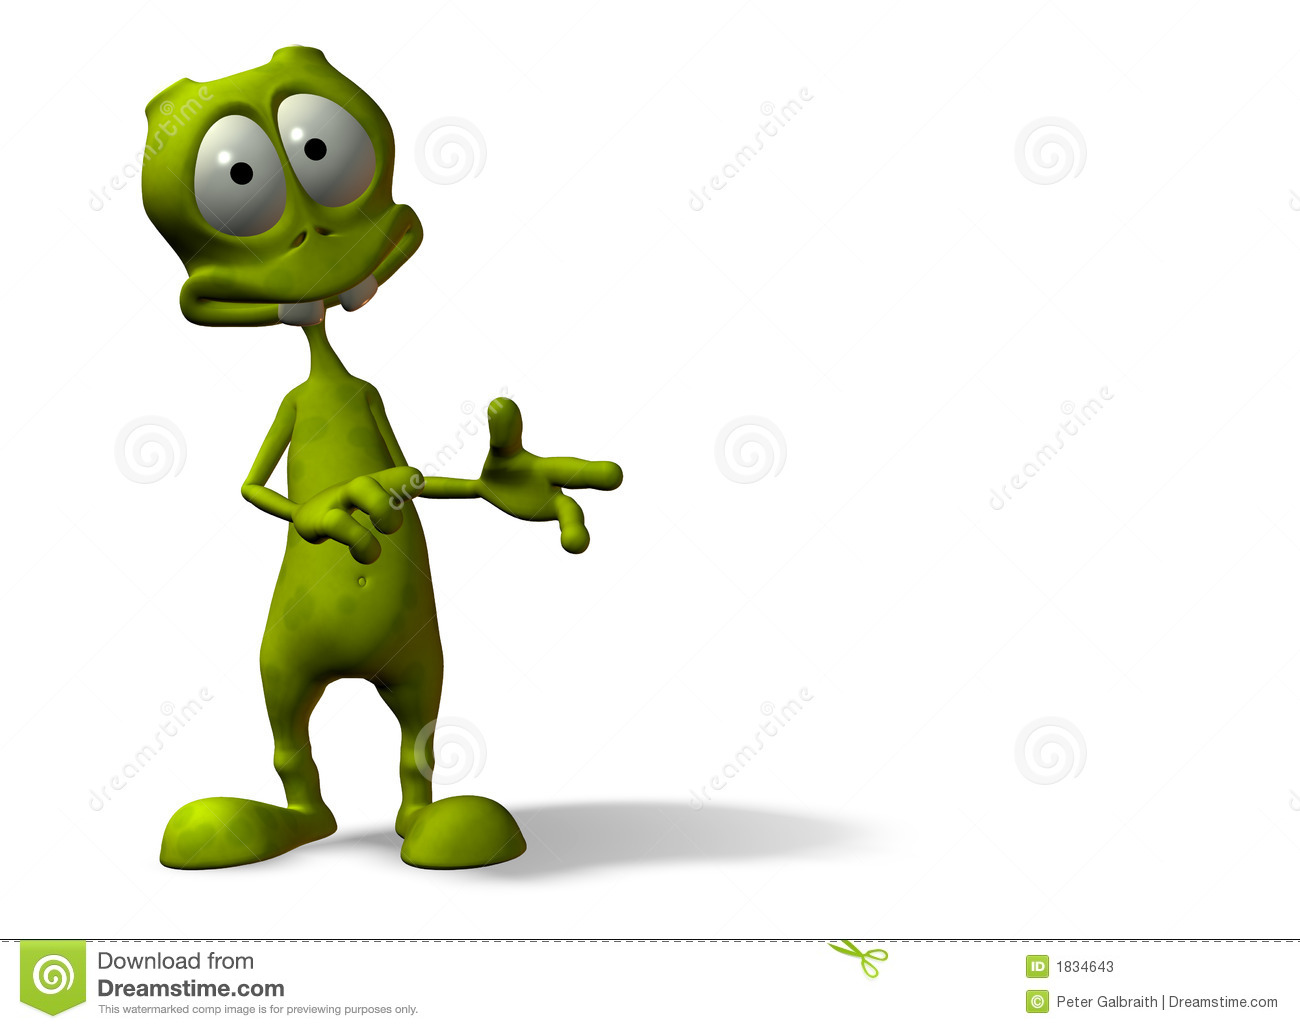 Stock Photo Bagel Gesture together with Hand Ok Sign Vector Art 25490 moreover Hot Dog Cartoon Thumbs Up Vector 5732560 as well Hand Holding A Cellphone as well Royalty Free Stock Photo D Man Showing Thumb Up Like Hand Symbol Over White Background Image31660095. on gesture cartoon